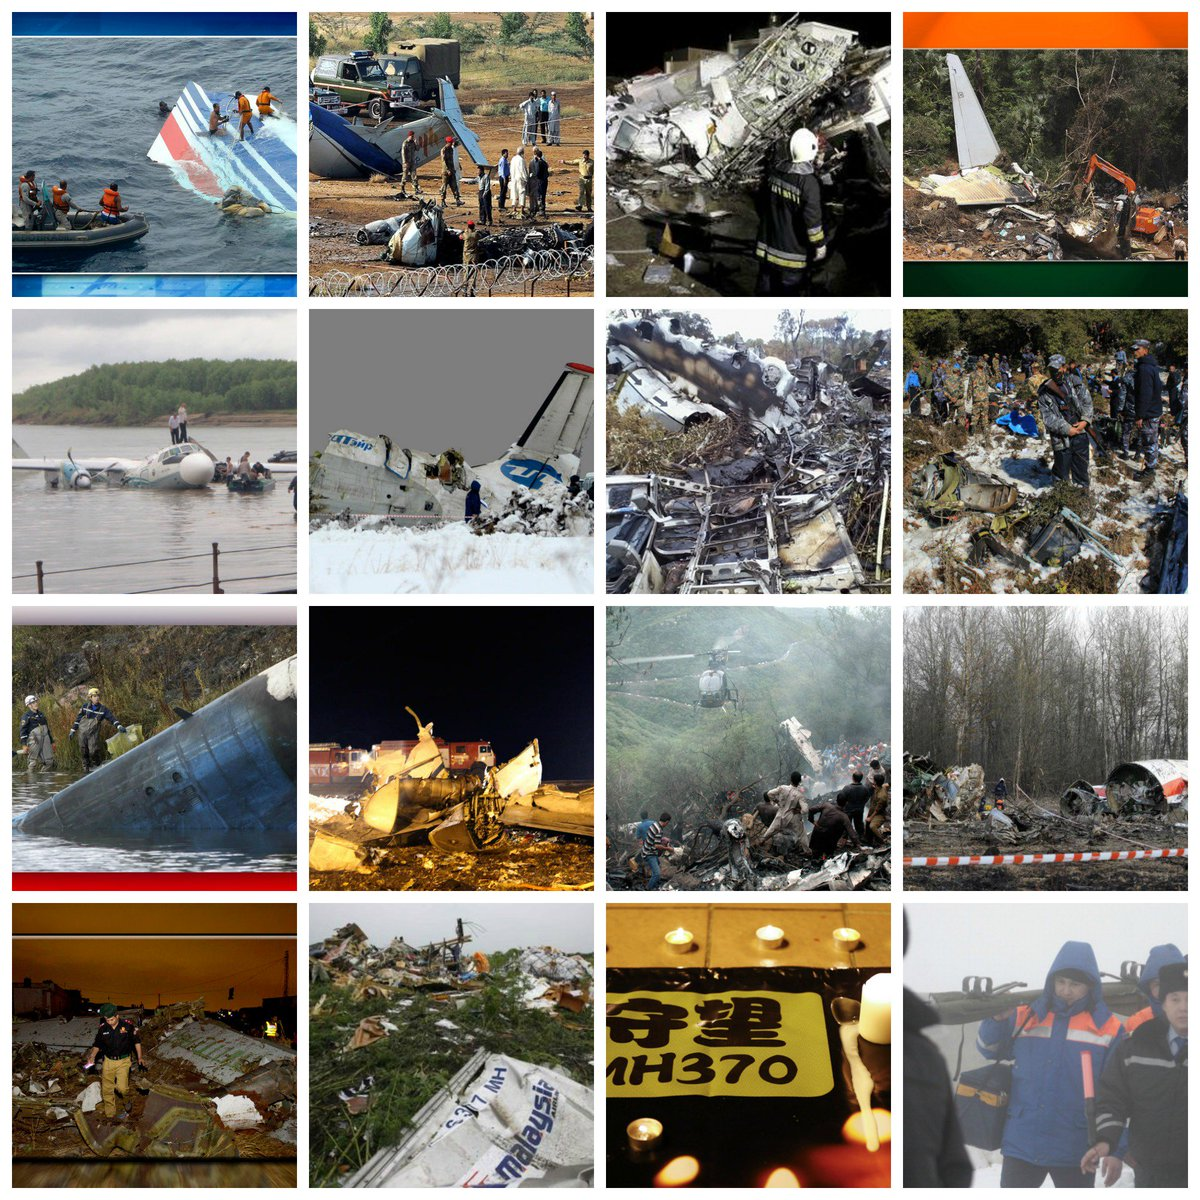 Timeline: A recap of the worst air crashes in civilian aviation since 2000